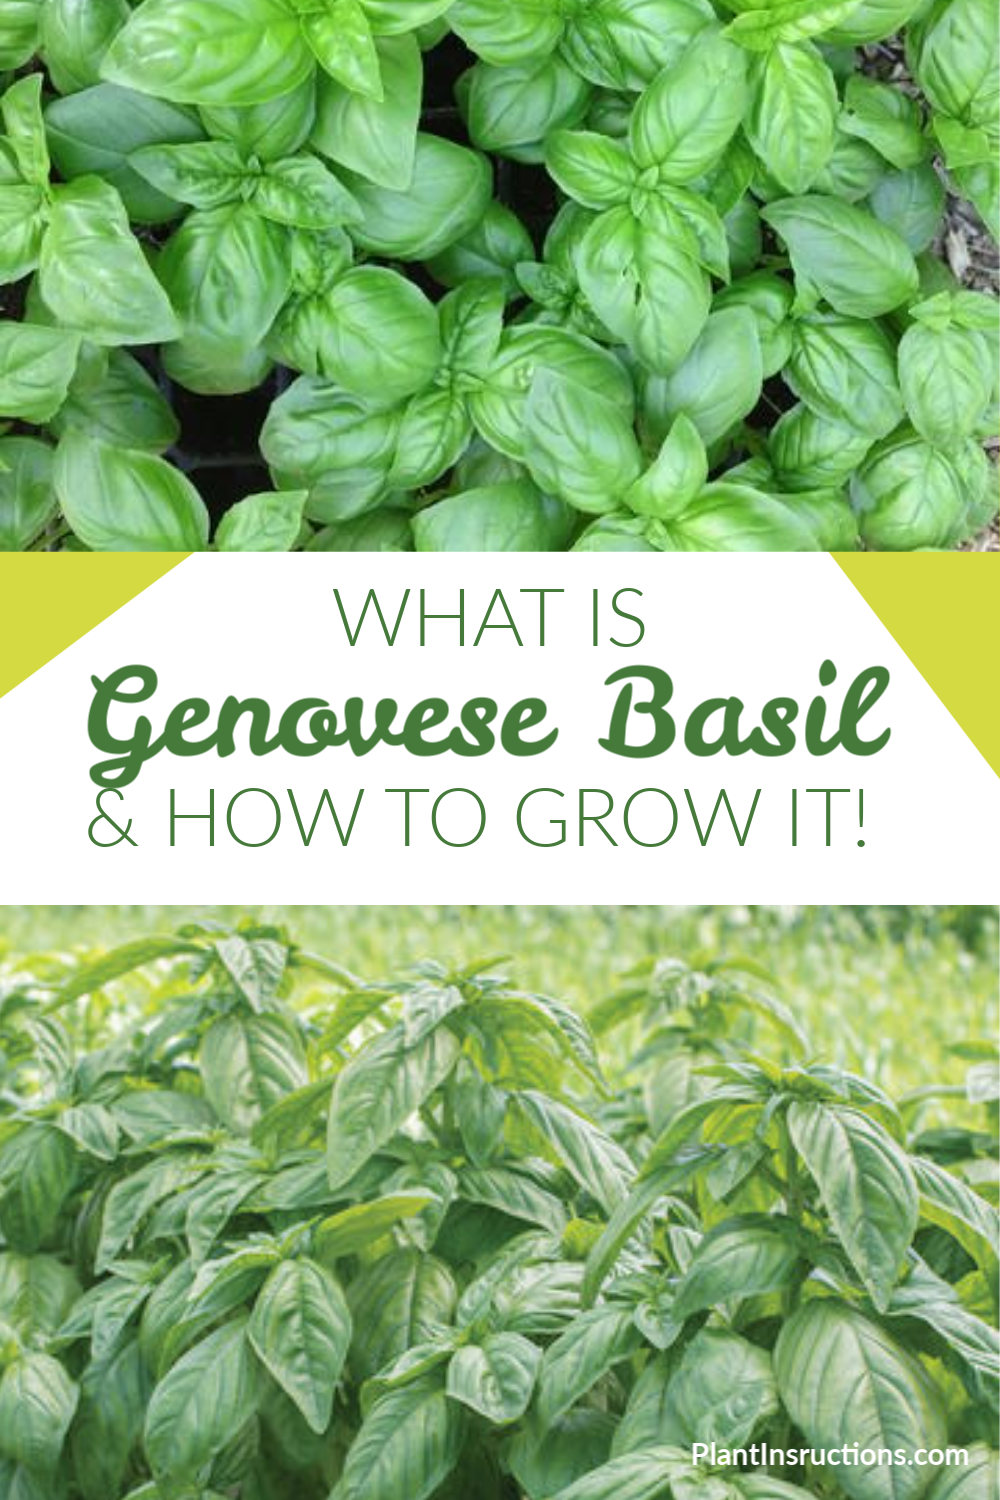 Never heard of Genovese basil before? You\'re not the only one! This less common known variety of basil originated in Italy and is popular due to its sweet and spicy flavor.  #genovesebasil #growingbasil #plantinstructions